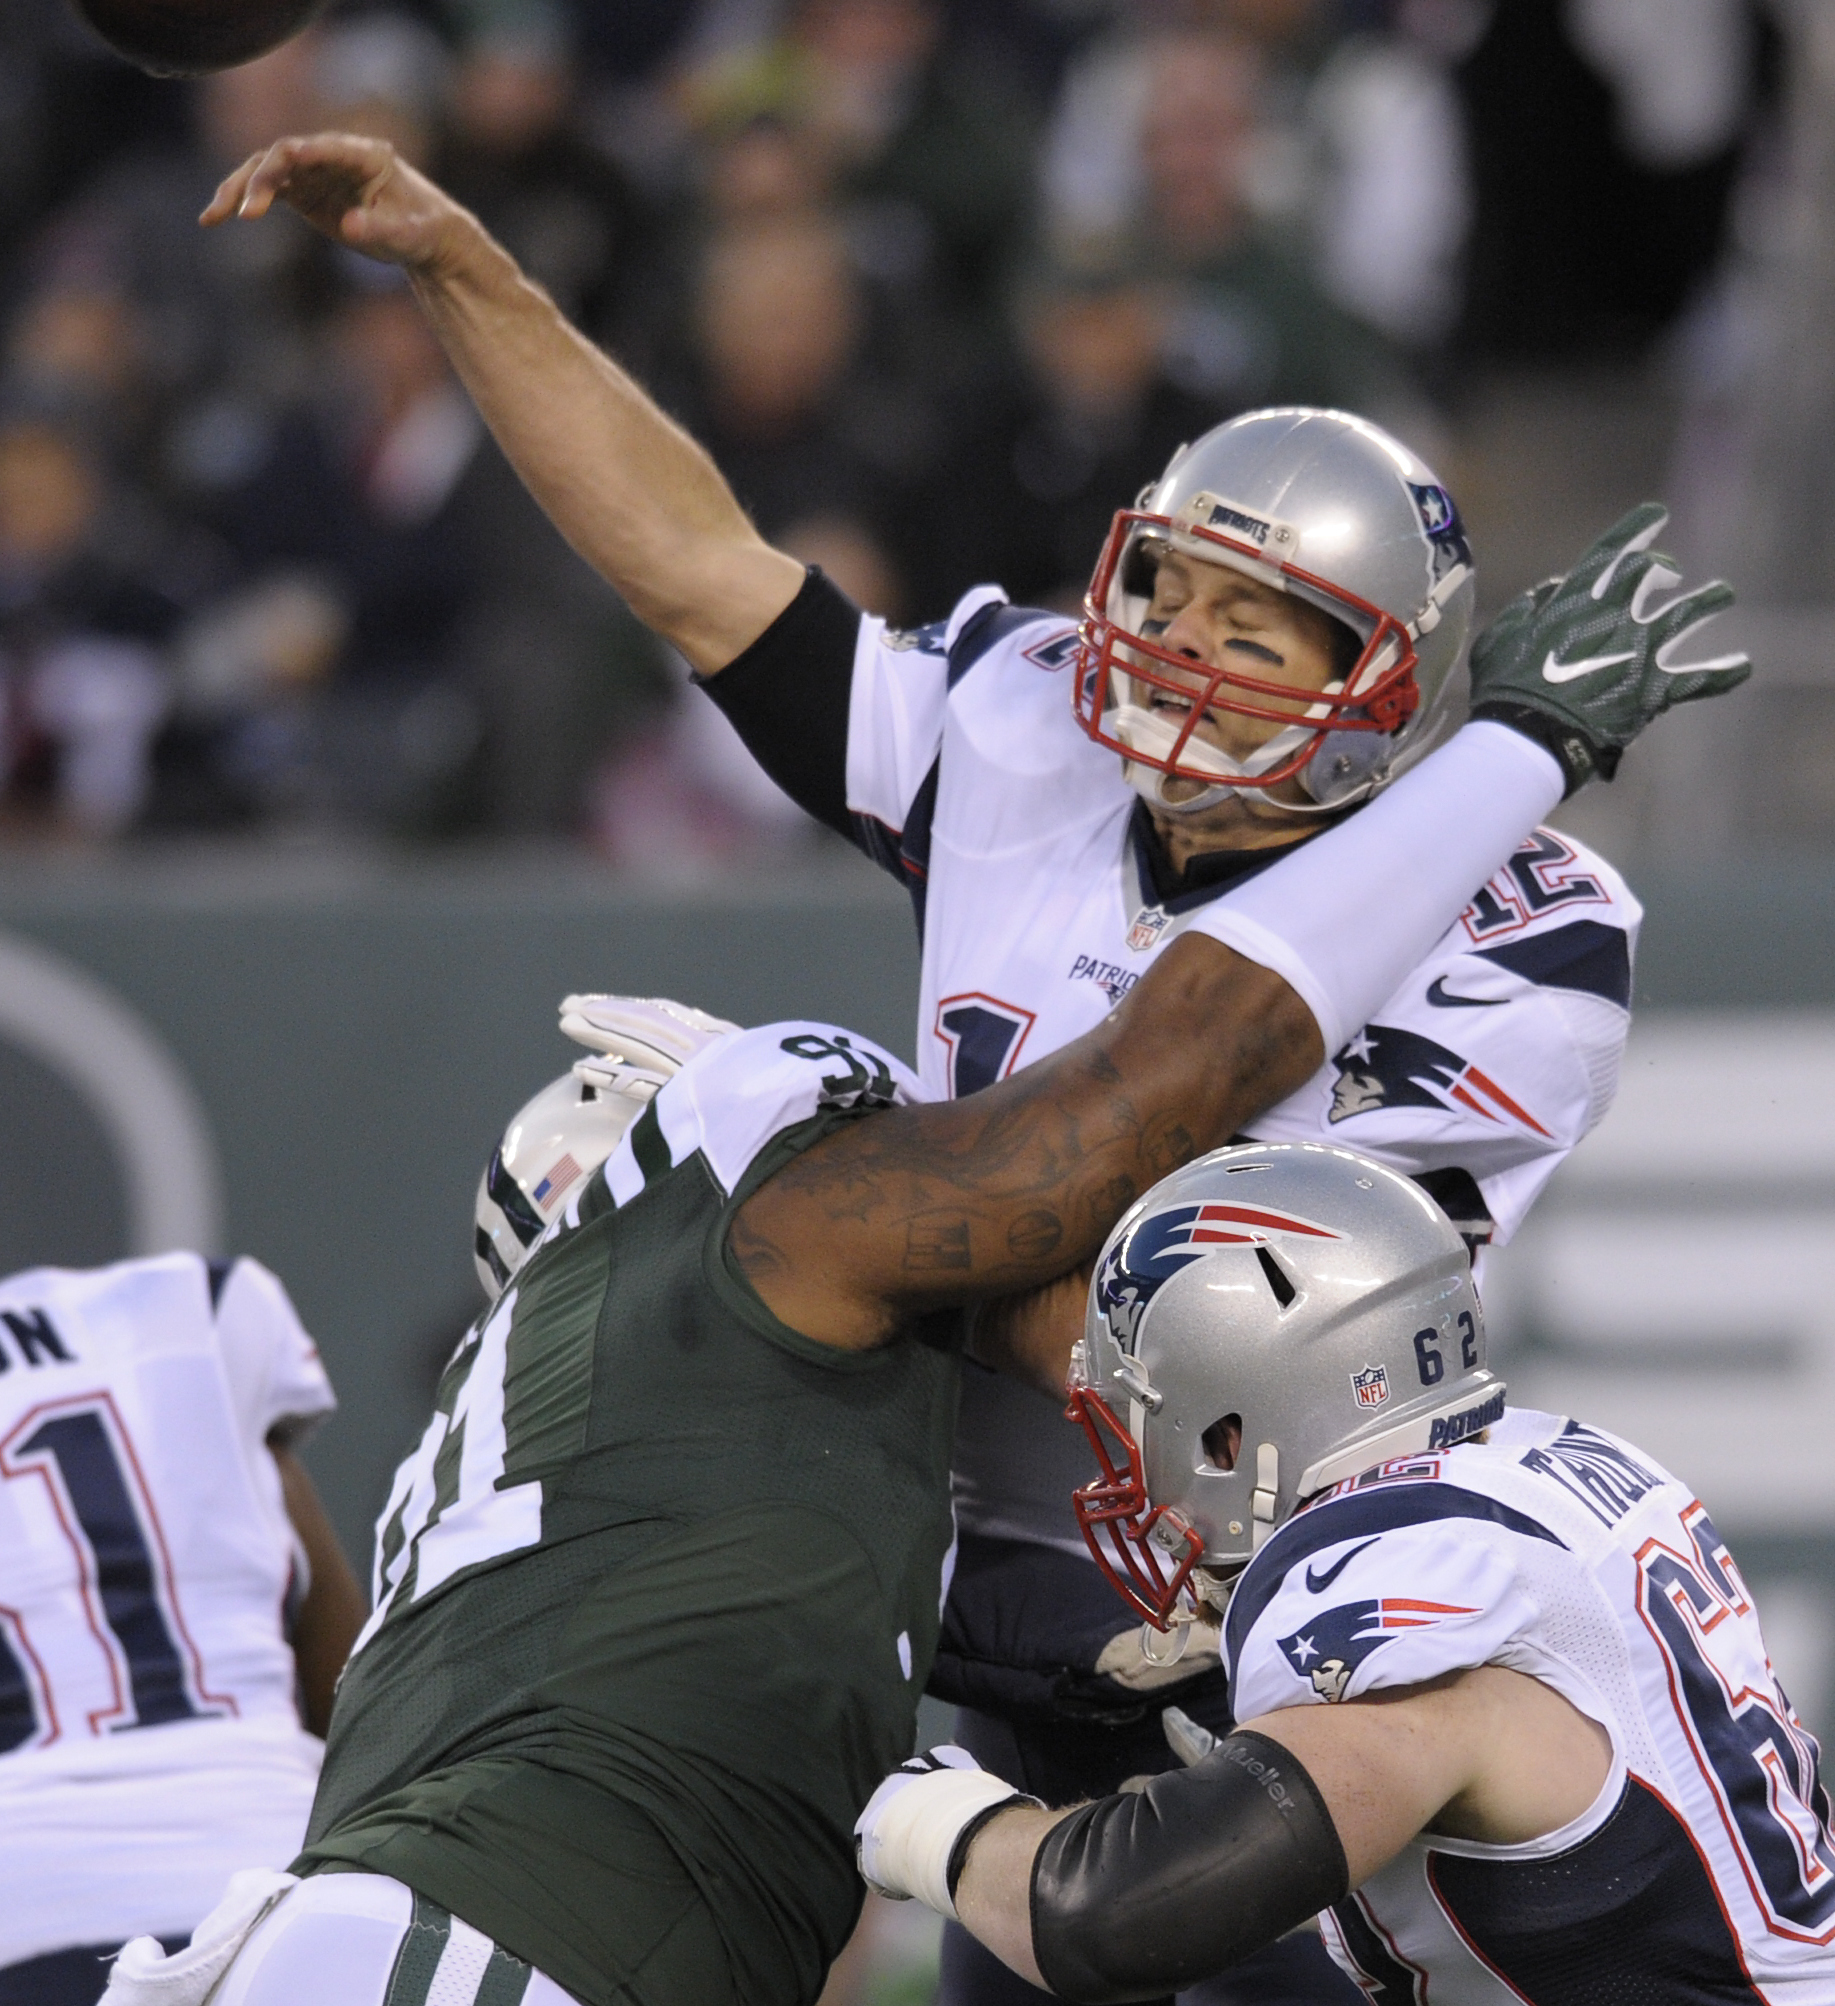 New England Patriots quarterback Tom Brady (12) throws under pressure from New York Jets defensive end Sheldon Richardson (91) during the first quarter of anNFL football game, Sunday, Nov. 27, 2016, in East Rutherford, N.J. (AP Photo/Bill Kostroun)